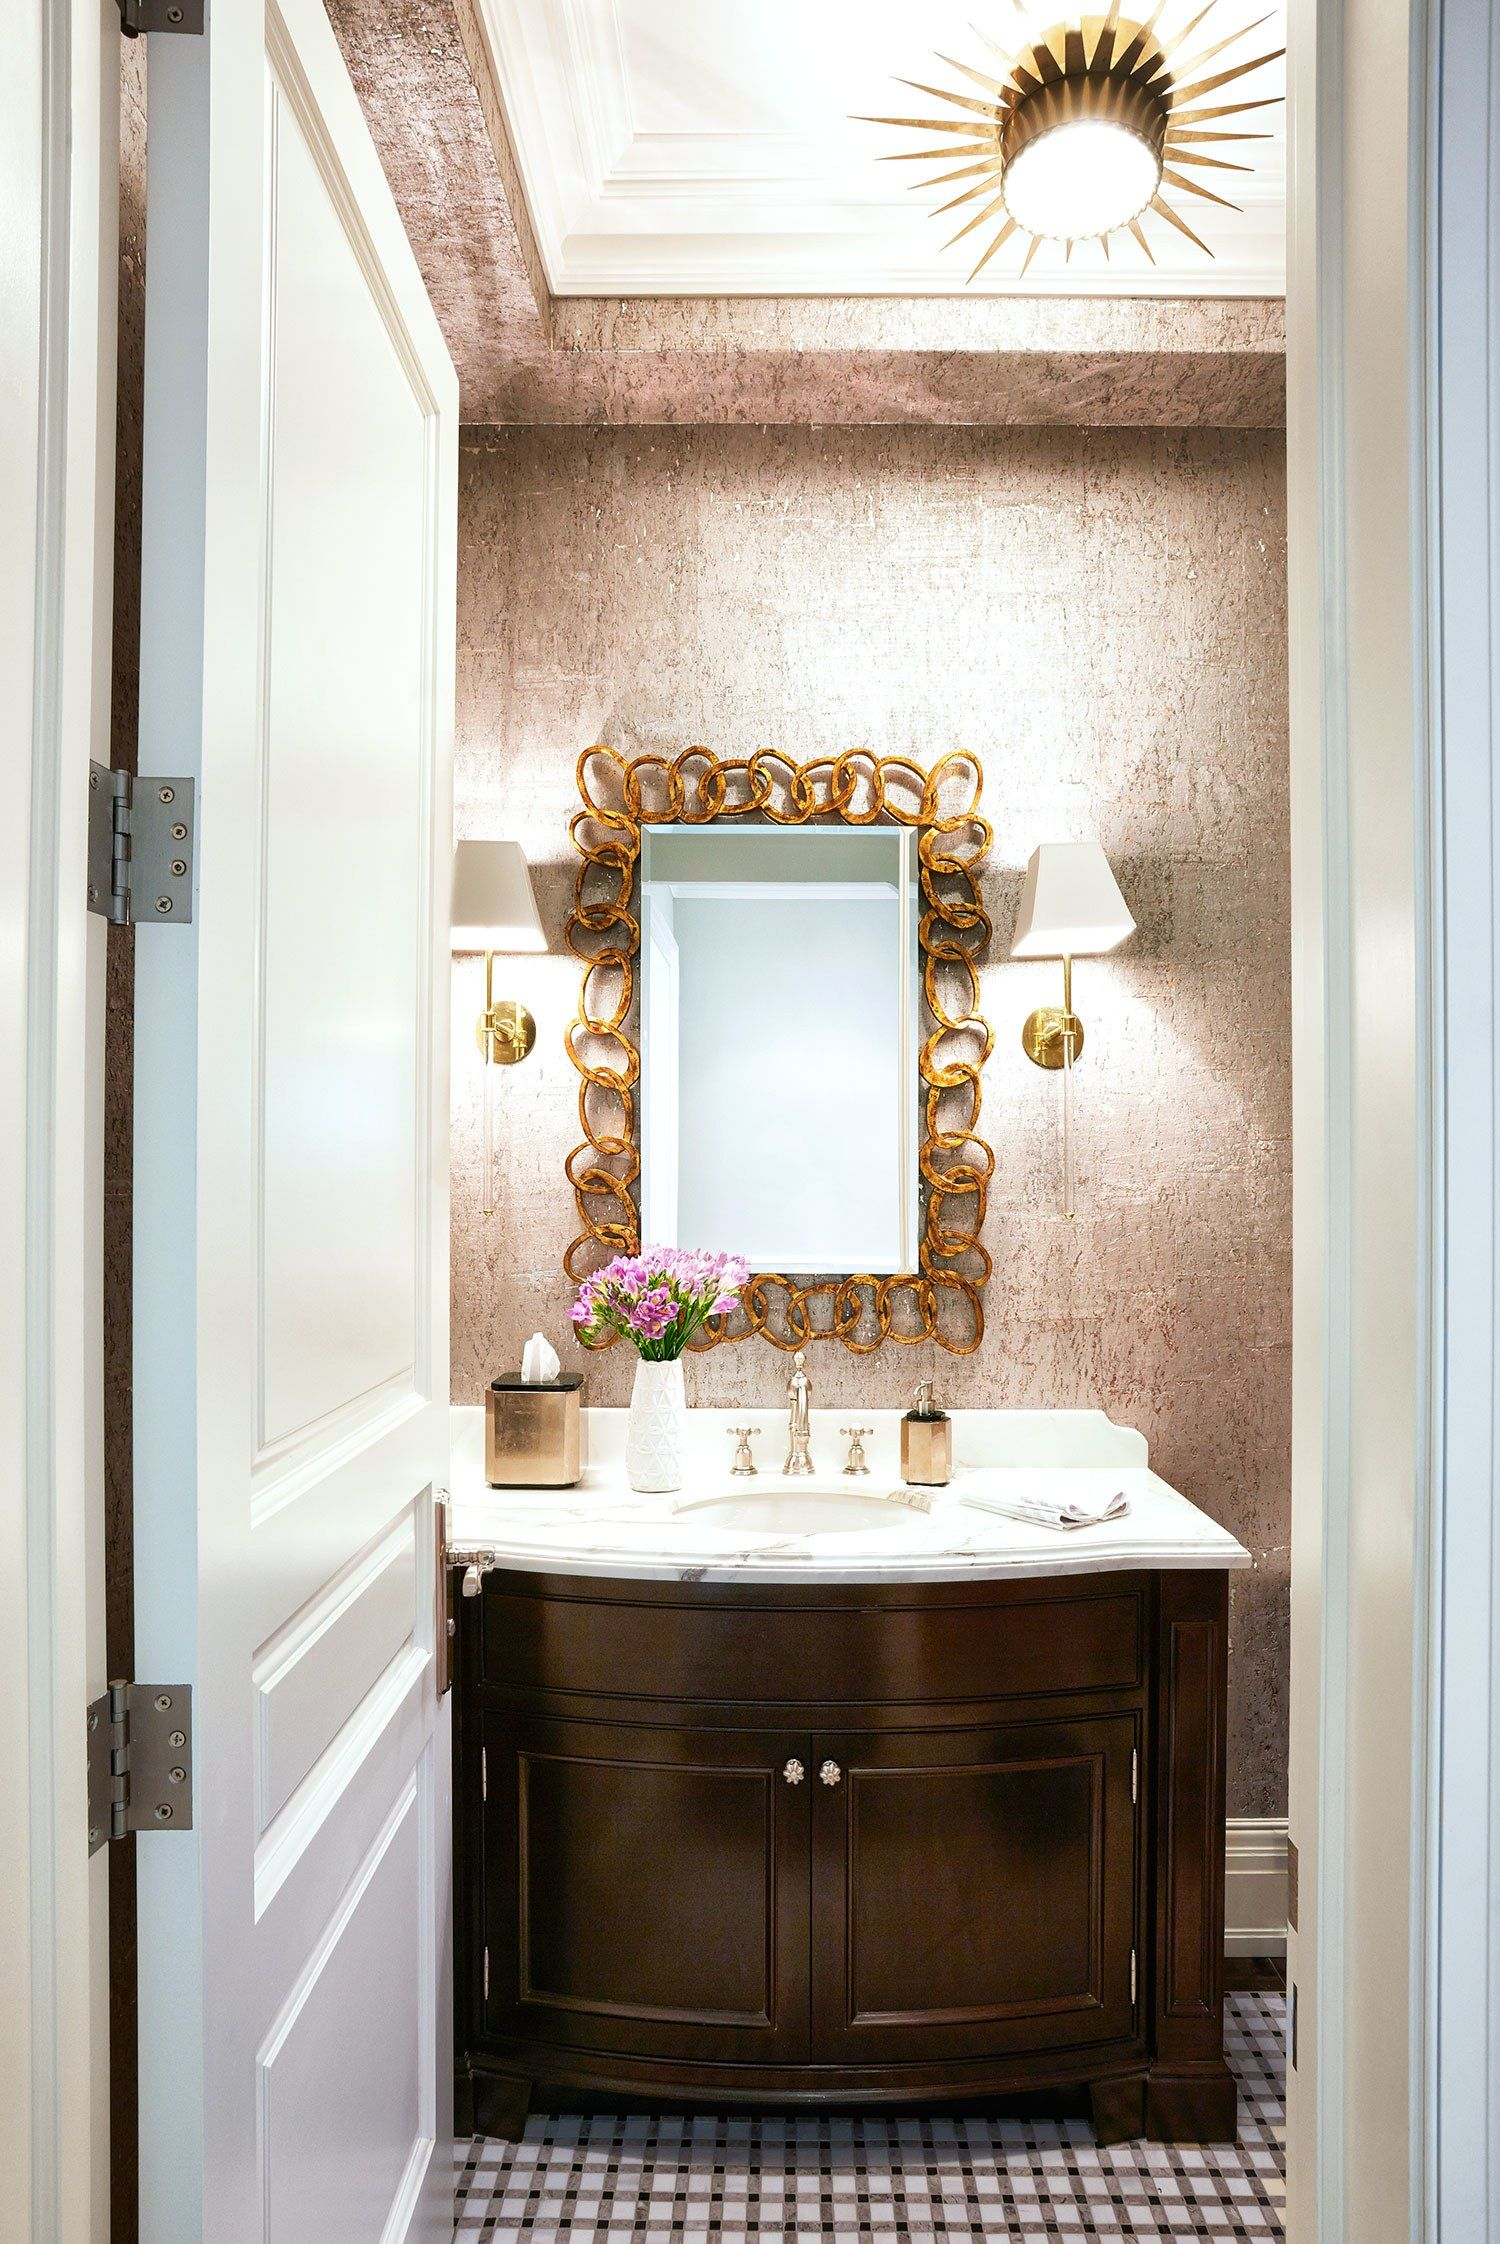 Bathroom Sconces Toronto a worldly and family-friendly home in toronto | architectural